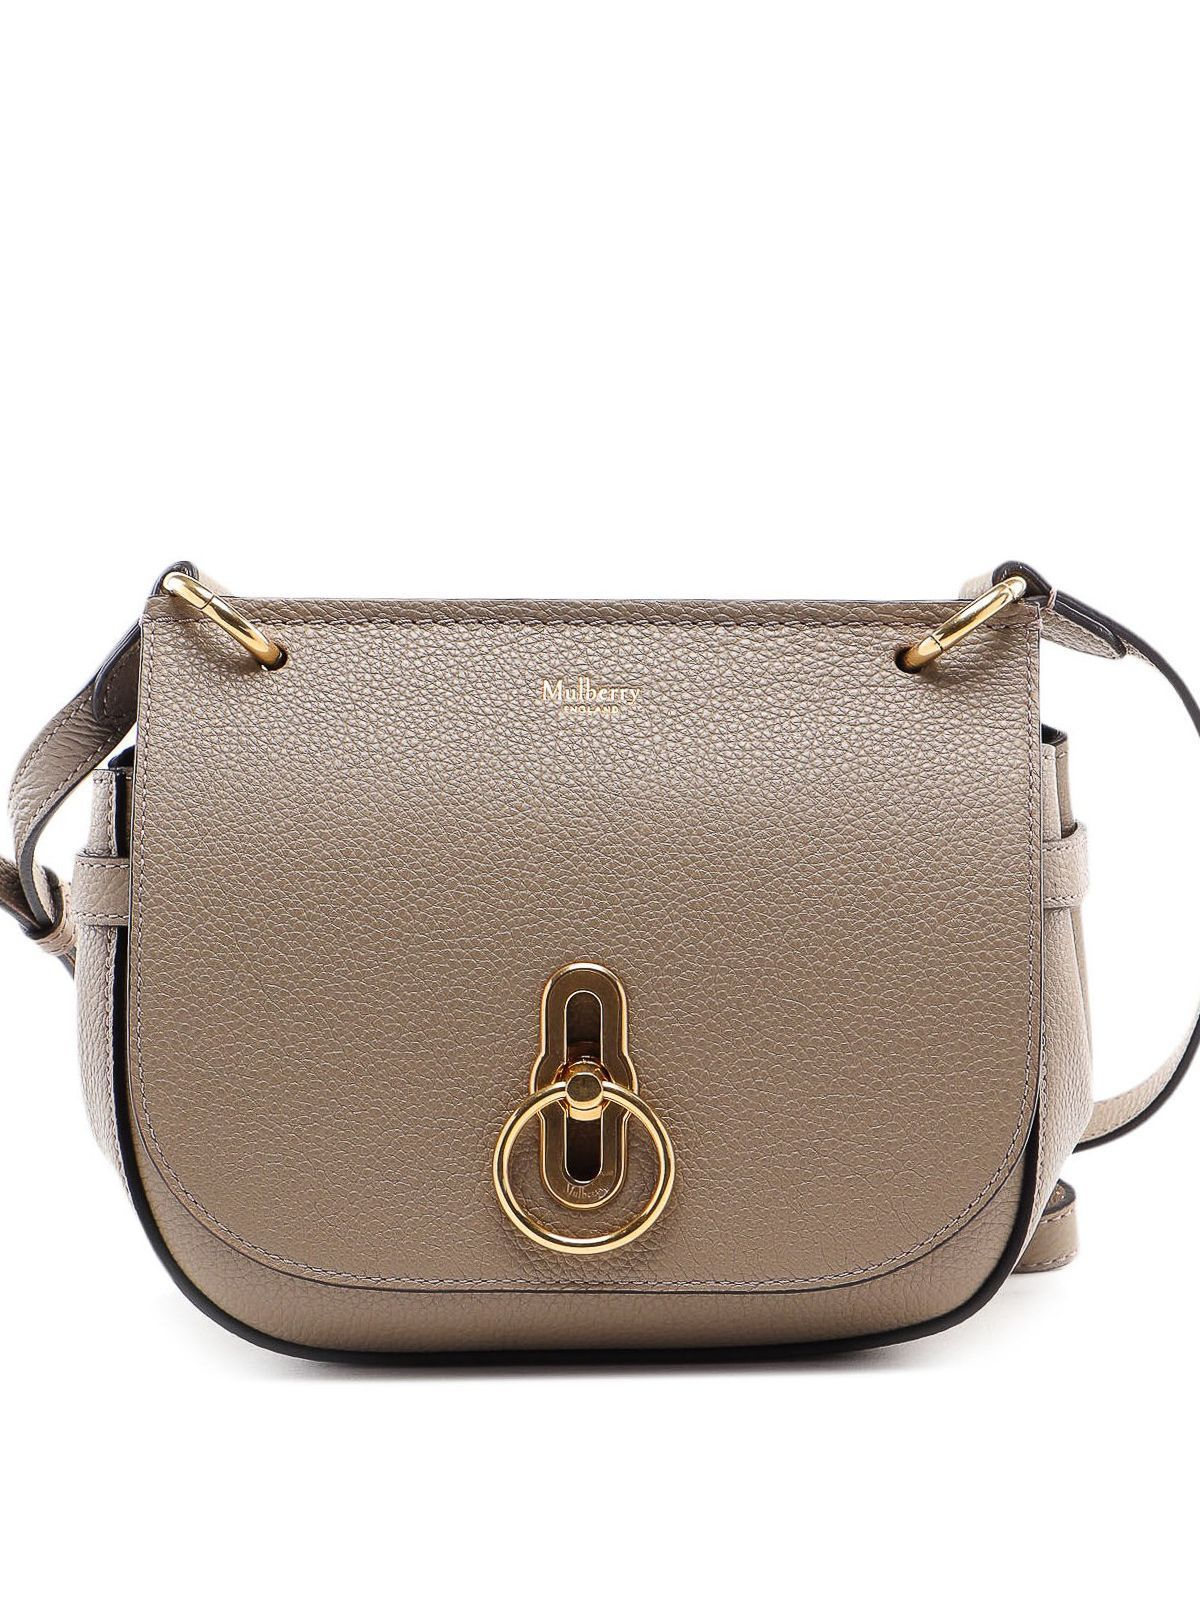 MULBERRY SMALL AMBERLEY LEATHER SATCHEL. #mulberry #bags #shoulder bags #hand bags #leather #satchel #mulberrybag MULBERRY SMALL AMBERLEY LEATHER SATCHEL. #mulberry #bags #shoulder bags #hand bags #leather #satchel #mulberrybag MULBERRY SMALL AMBERLEY LEATHER SATCHEL. #mulberry #bags #shoulder bags #hand bags #leather #satchel #mulberrybag MULBERRY SMALL AMBERLEY LEATHER SATCHEL. #mulberry #bags #shoulder bags #hand bags #leather #satchel #mulberrybag